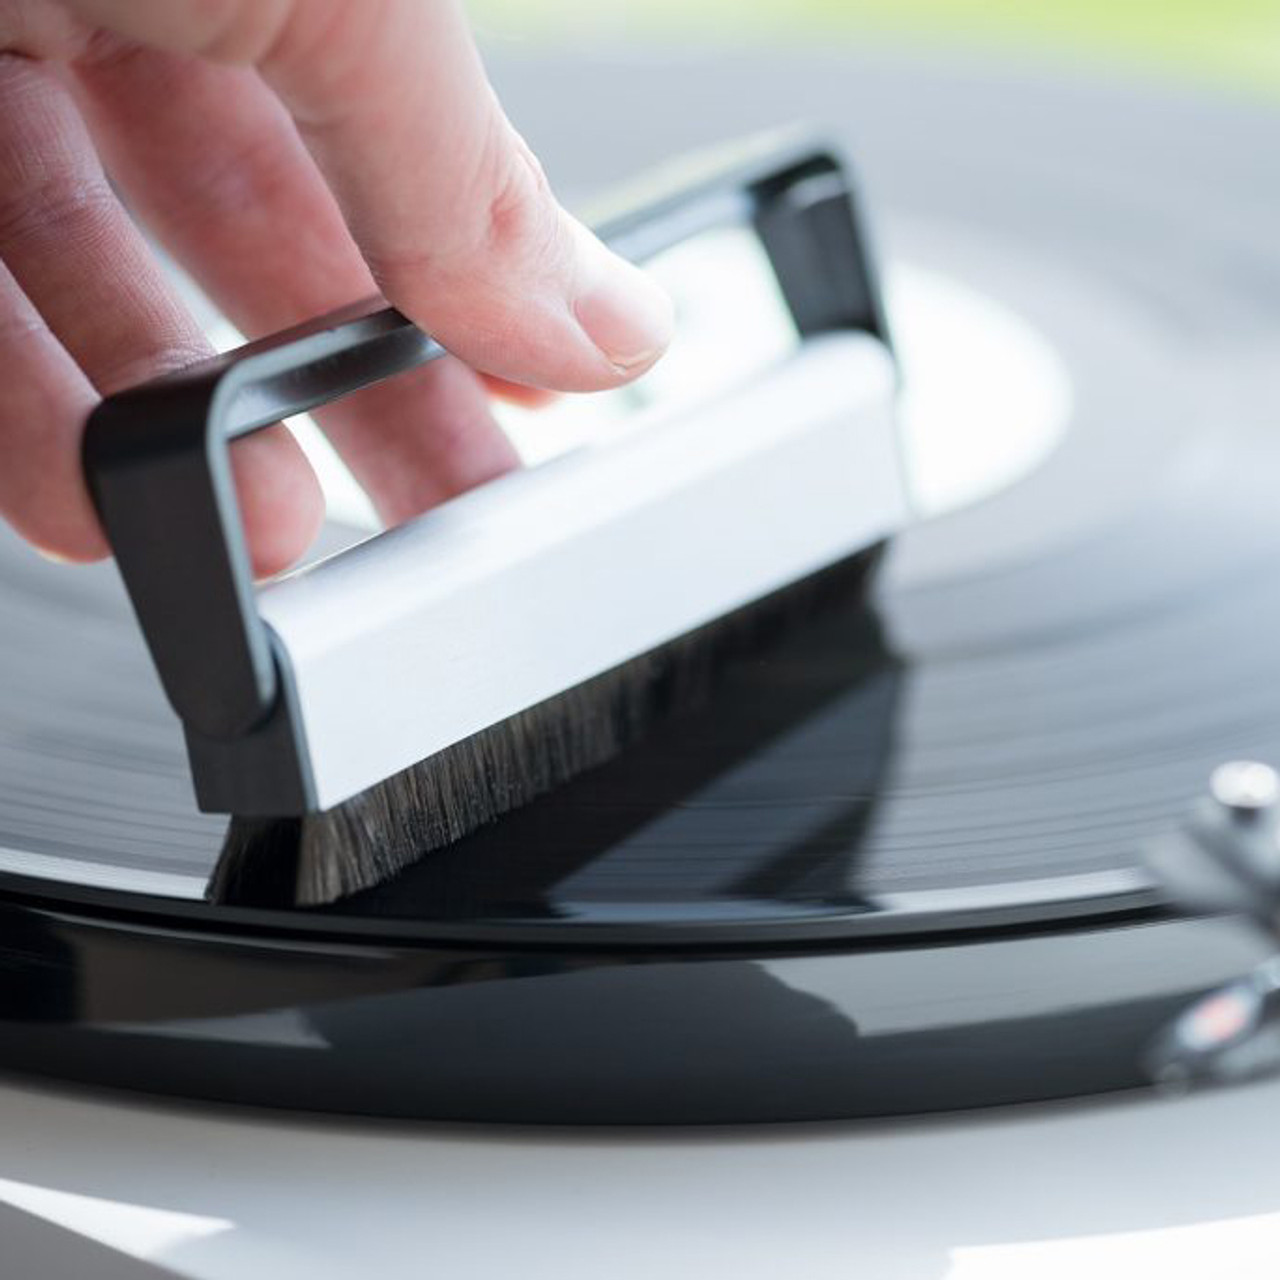 Pro-Ject Brush It Carbon Fibre Record Cleaning Brush